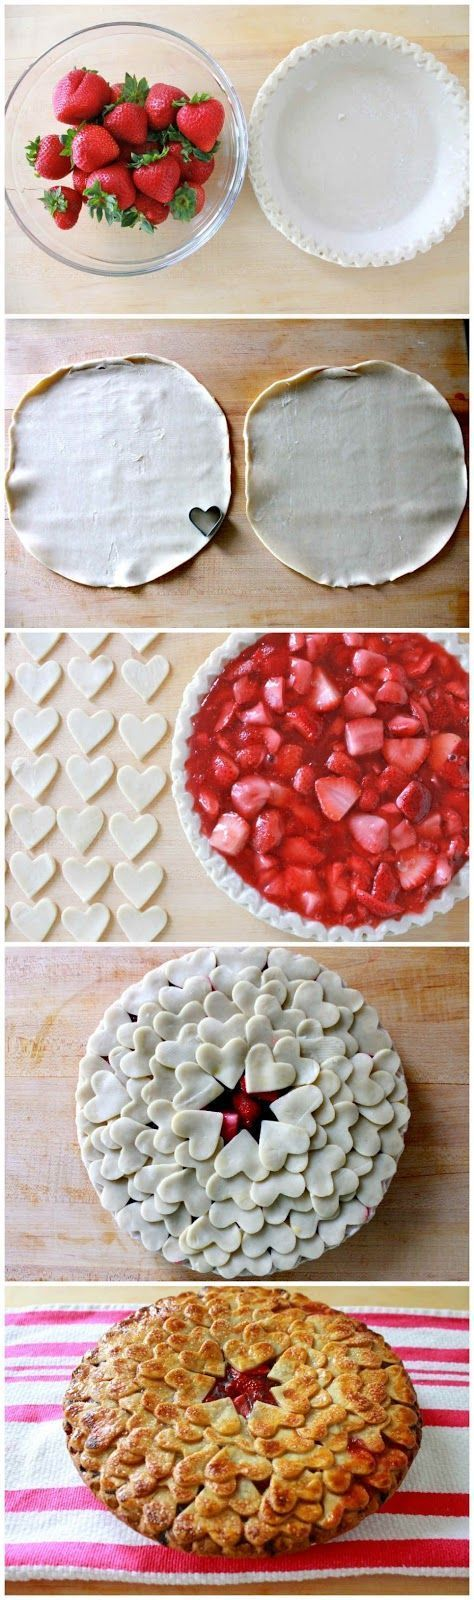 Strawberry Heart Pie....I'd like to think I have the energy to do this at some point.